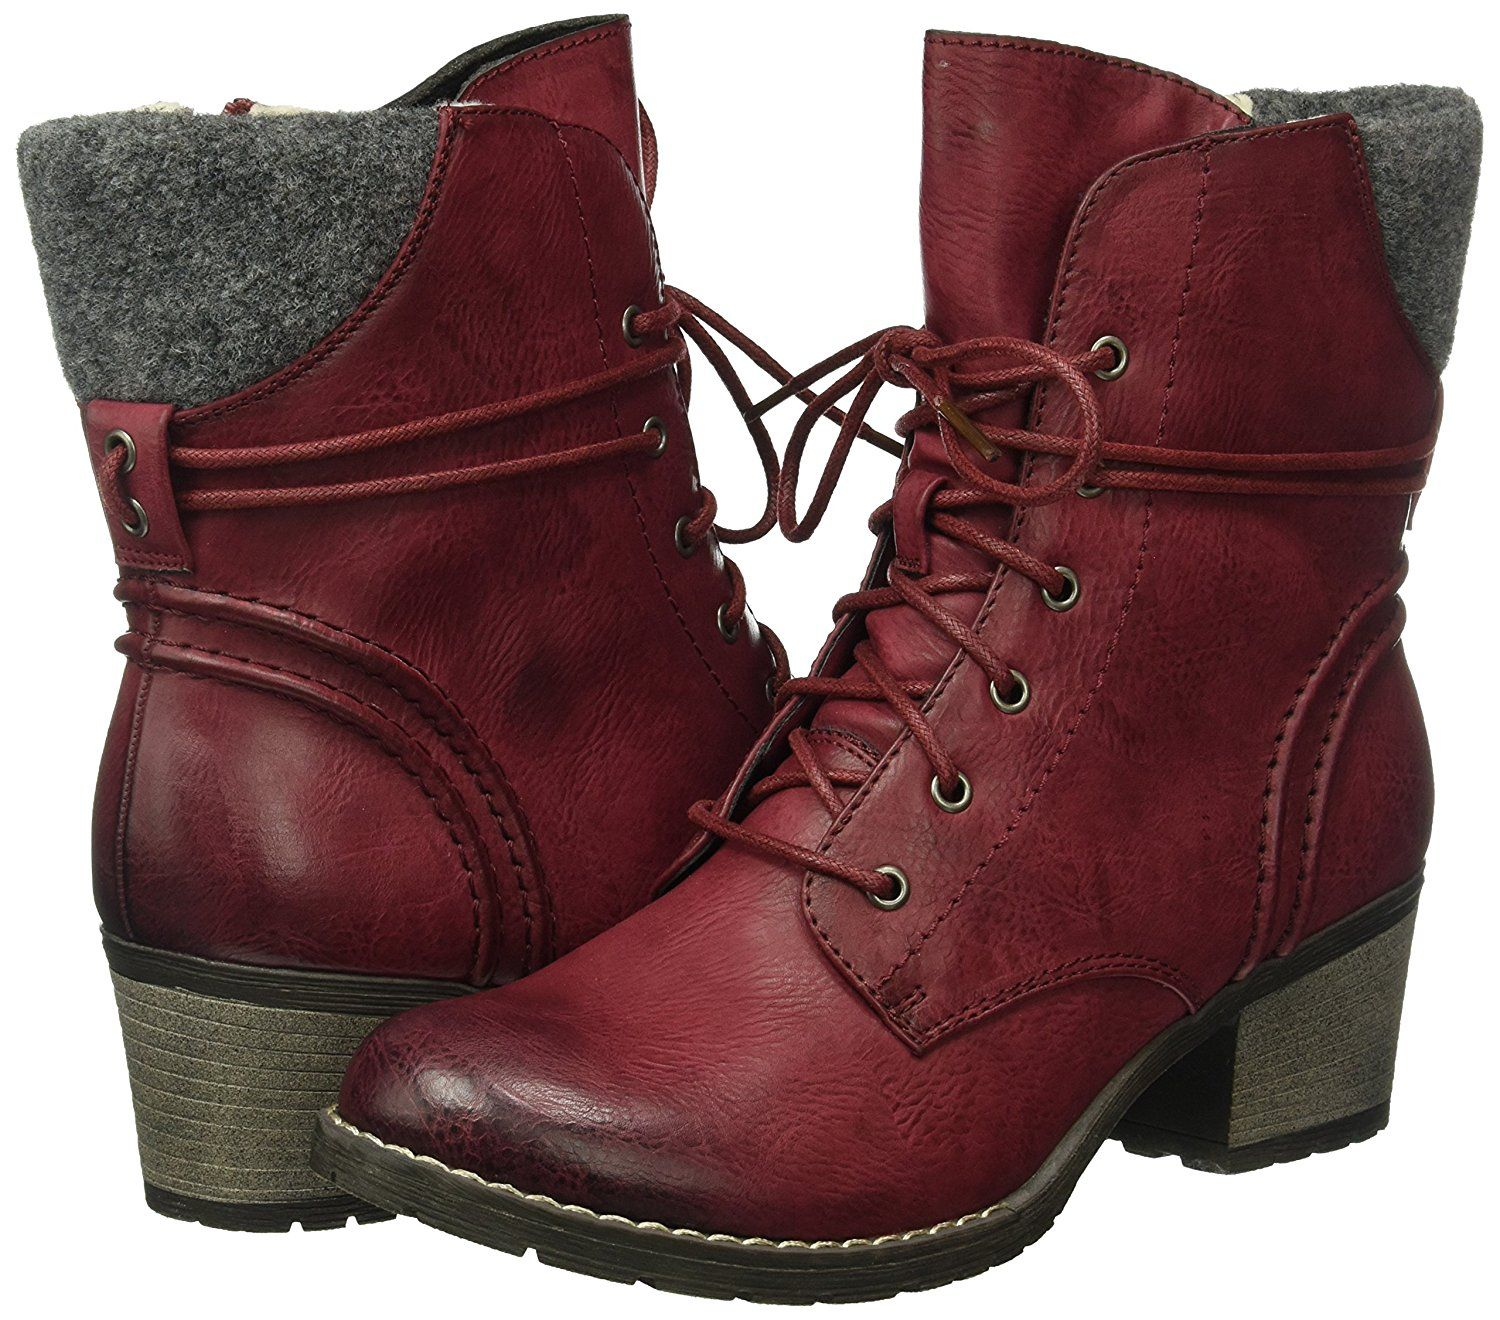 official store hot sale online buy popular Pin on Boots